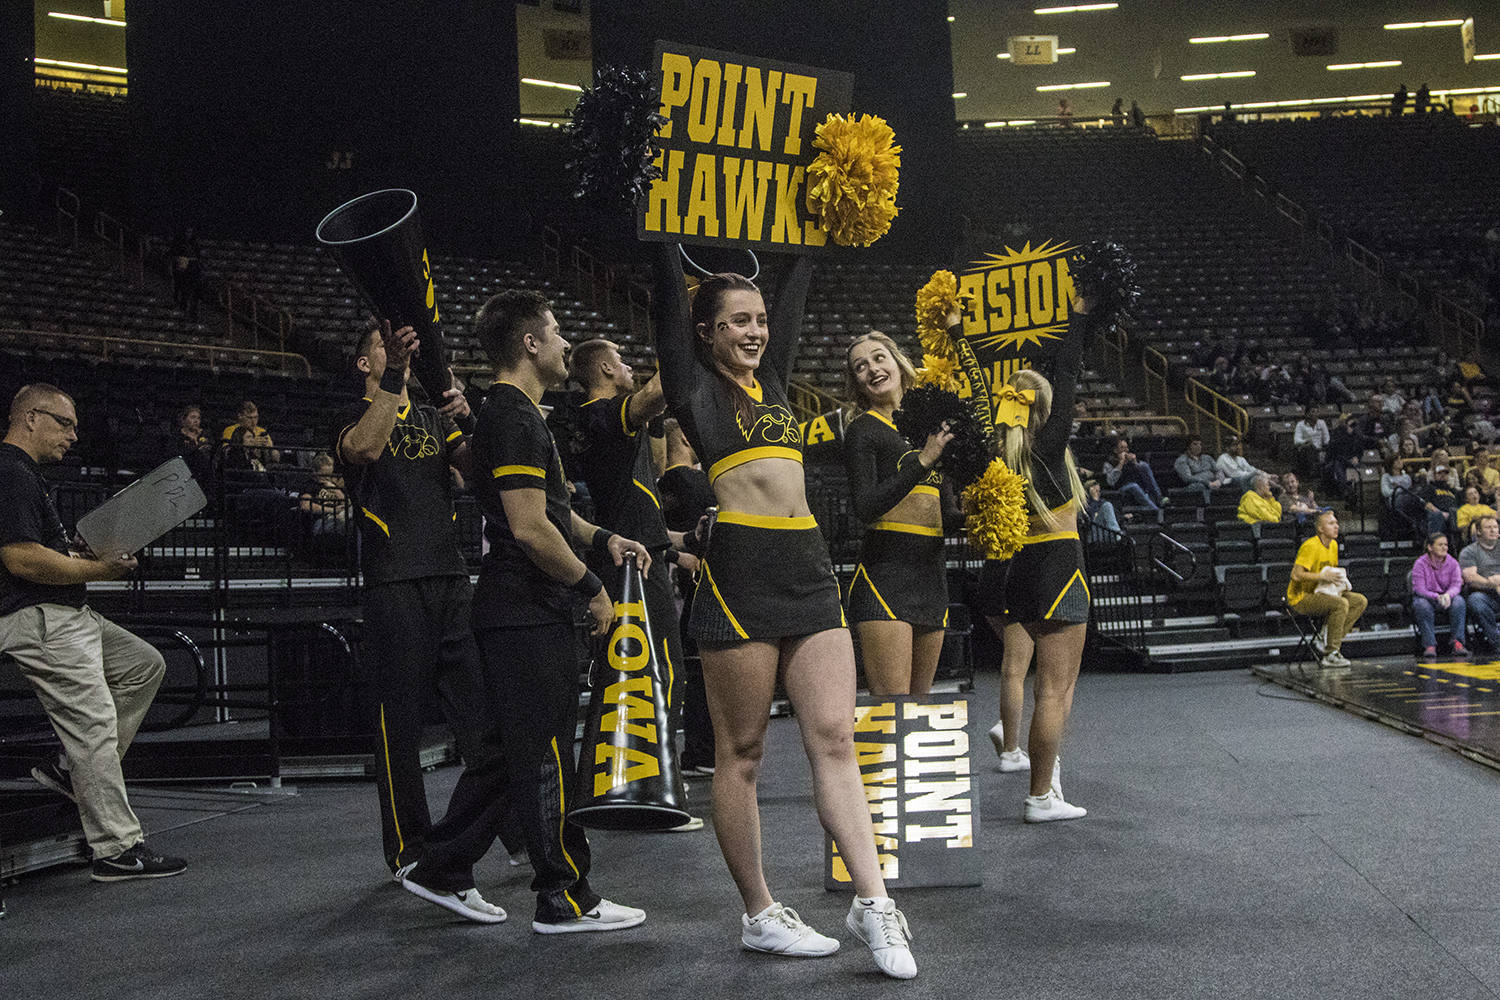 Iowa+cheerleaders+pump+up+the+crowd+during+a+volleyball+match+between+Iowa+and+Penn+State+at+Carver-Hawkeye+Arena+on+Saturday%2C+Nov.+3%2C+2018.+The+Hawkeyes+were+shut+out+by+the+Nittany+Lions%2C+3-0.